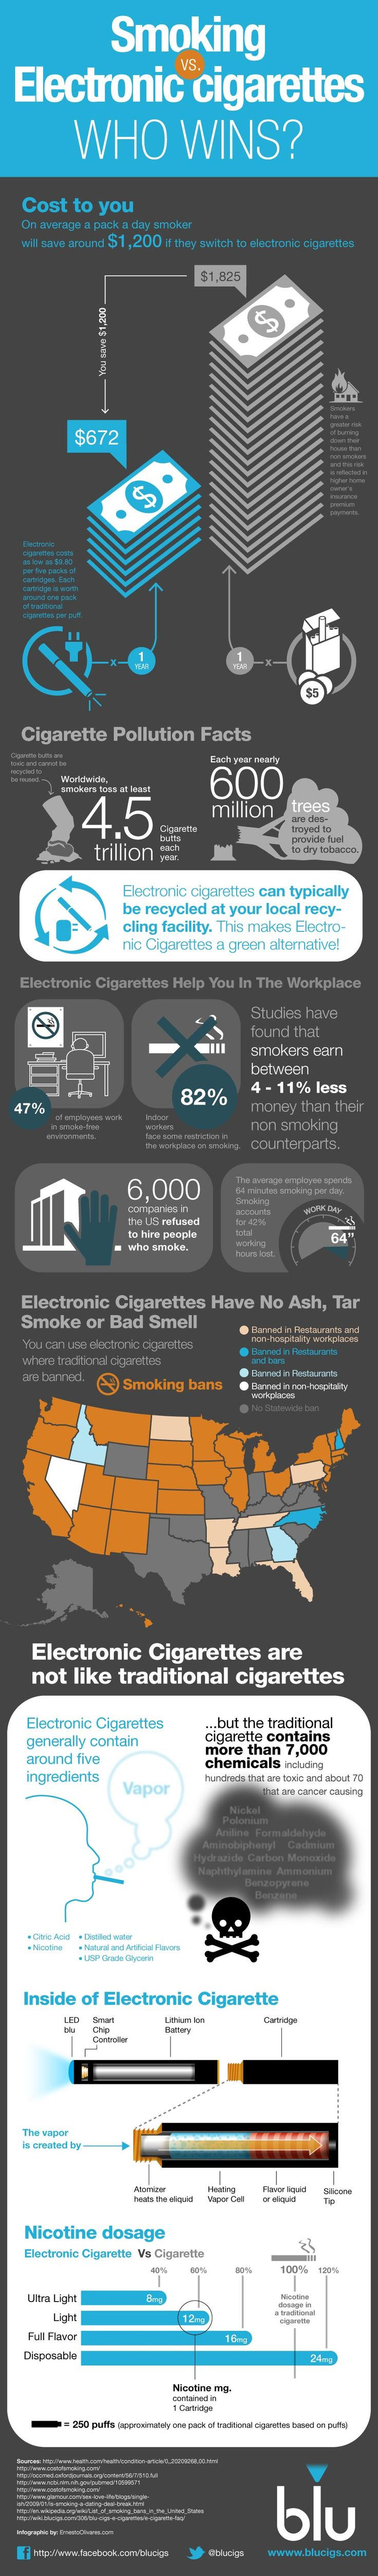 "Electronic Cigarettes are ""Hot""- but are they better than smoking?"